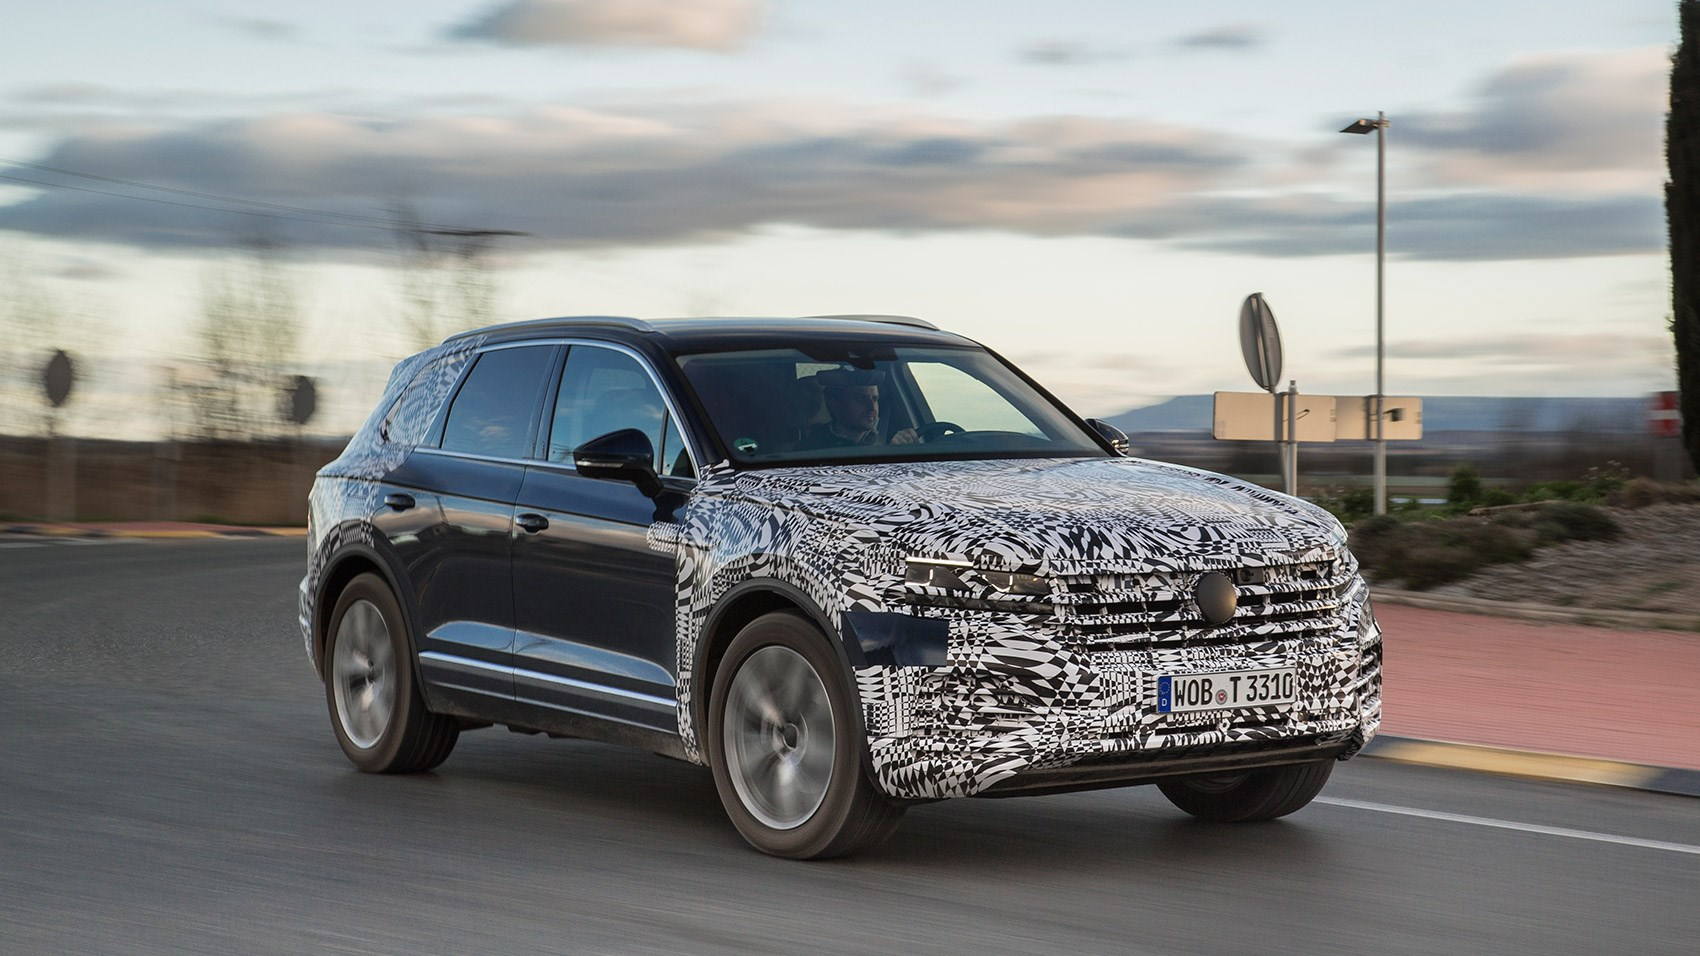 vw touareg review 2018 specs prices on sale date car magazine. Black Bedroom Furniture Sets. Home Design Ideas